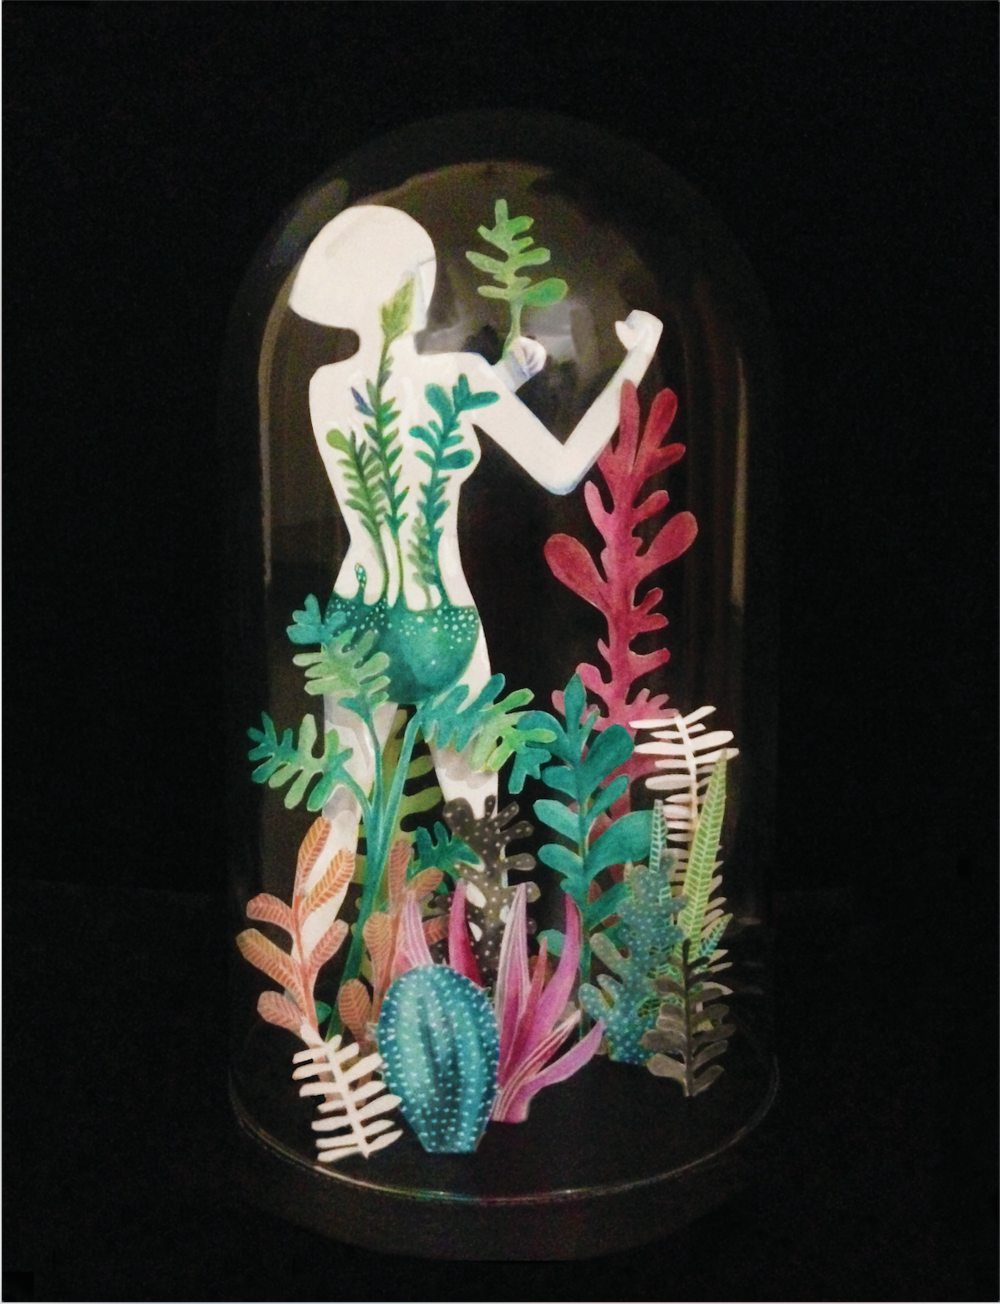 Water colour, paper cut out, and assembled in a bell jar.